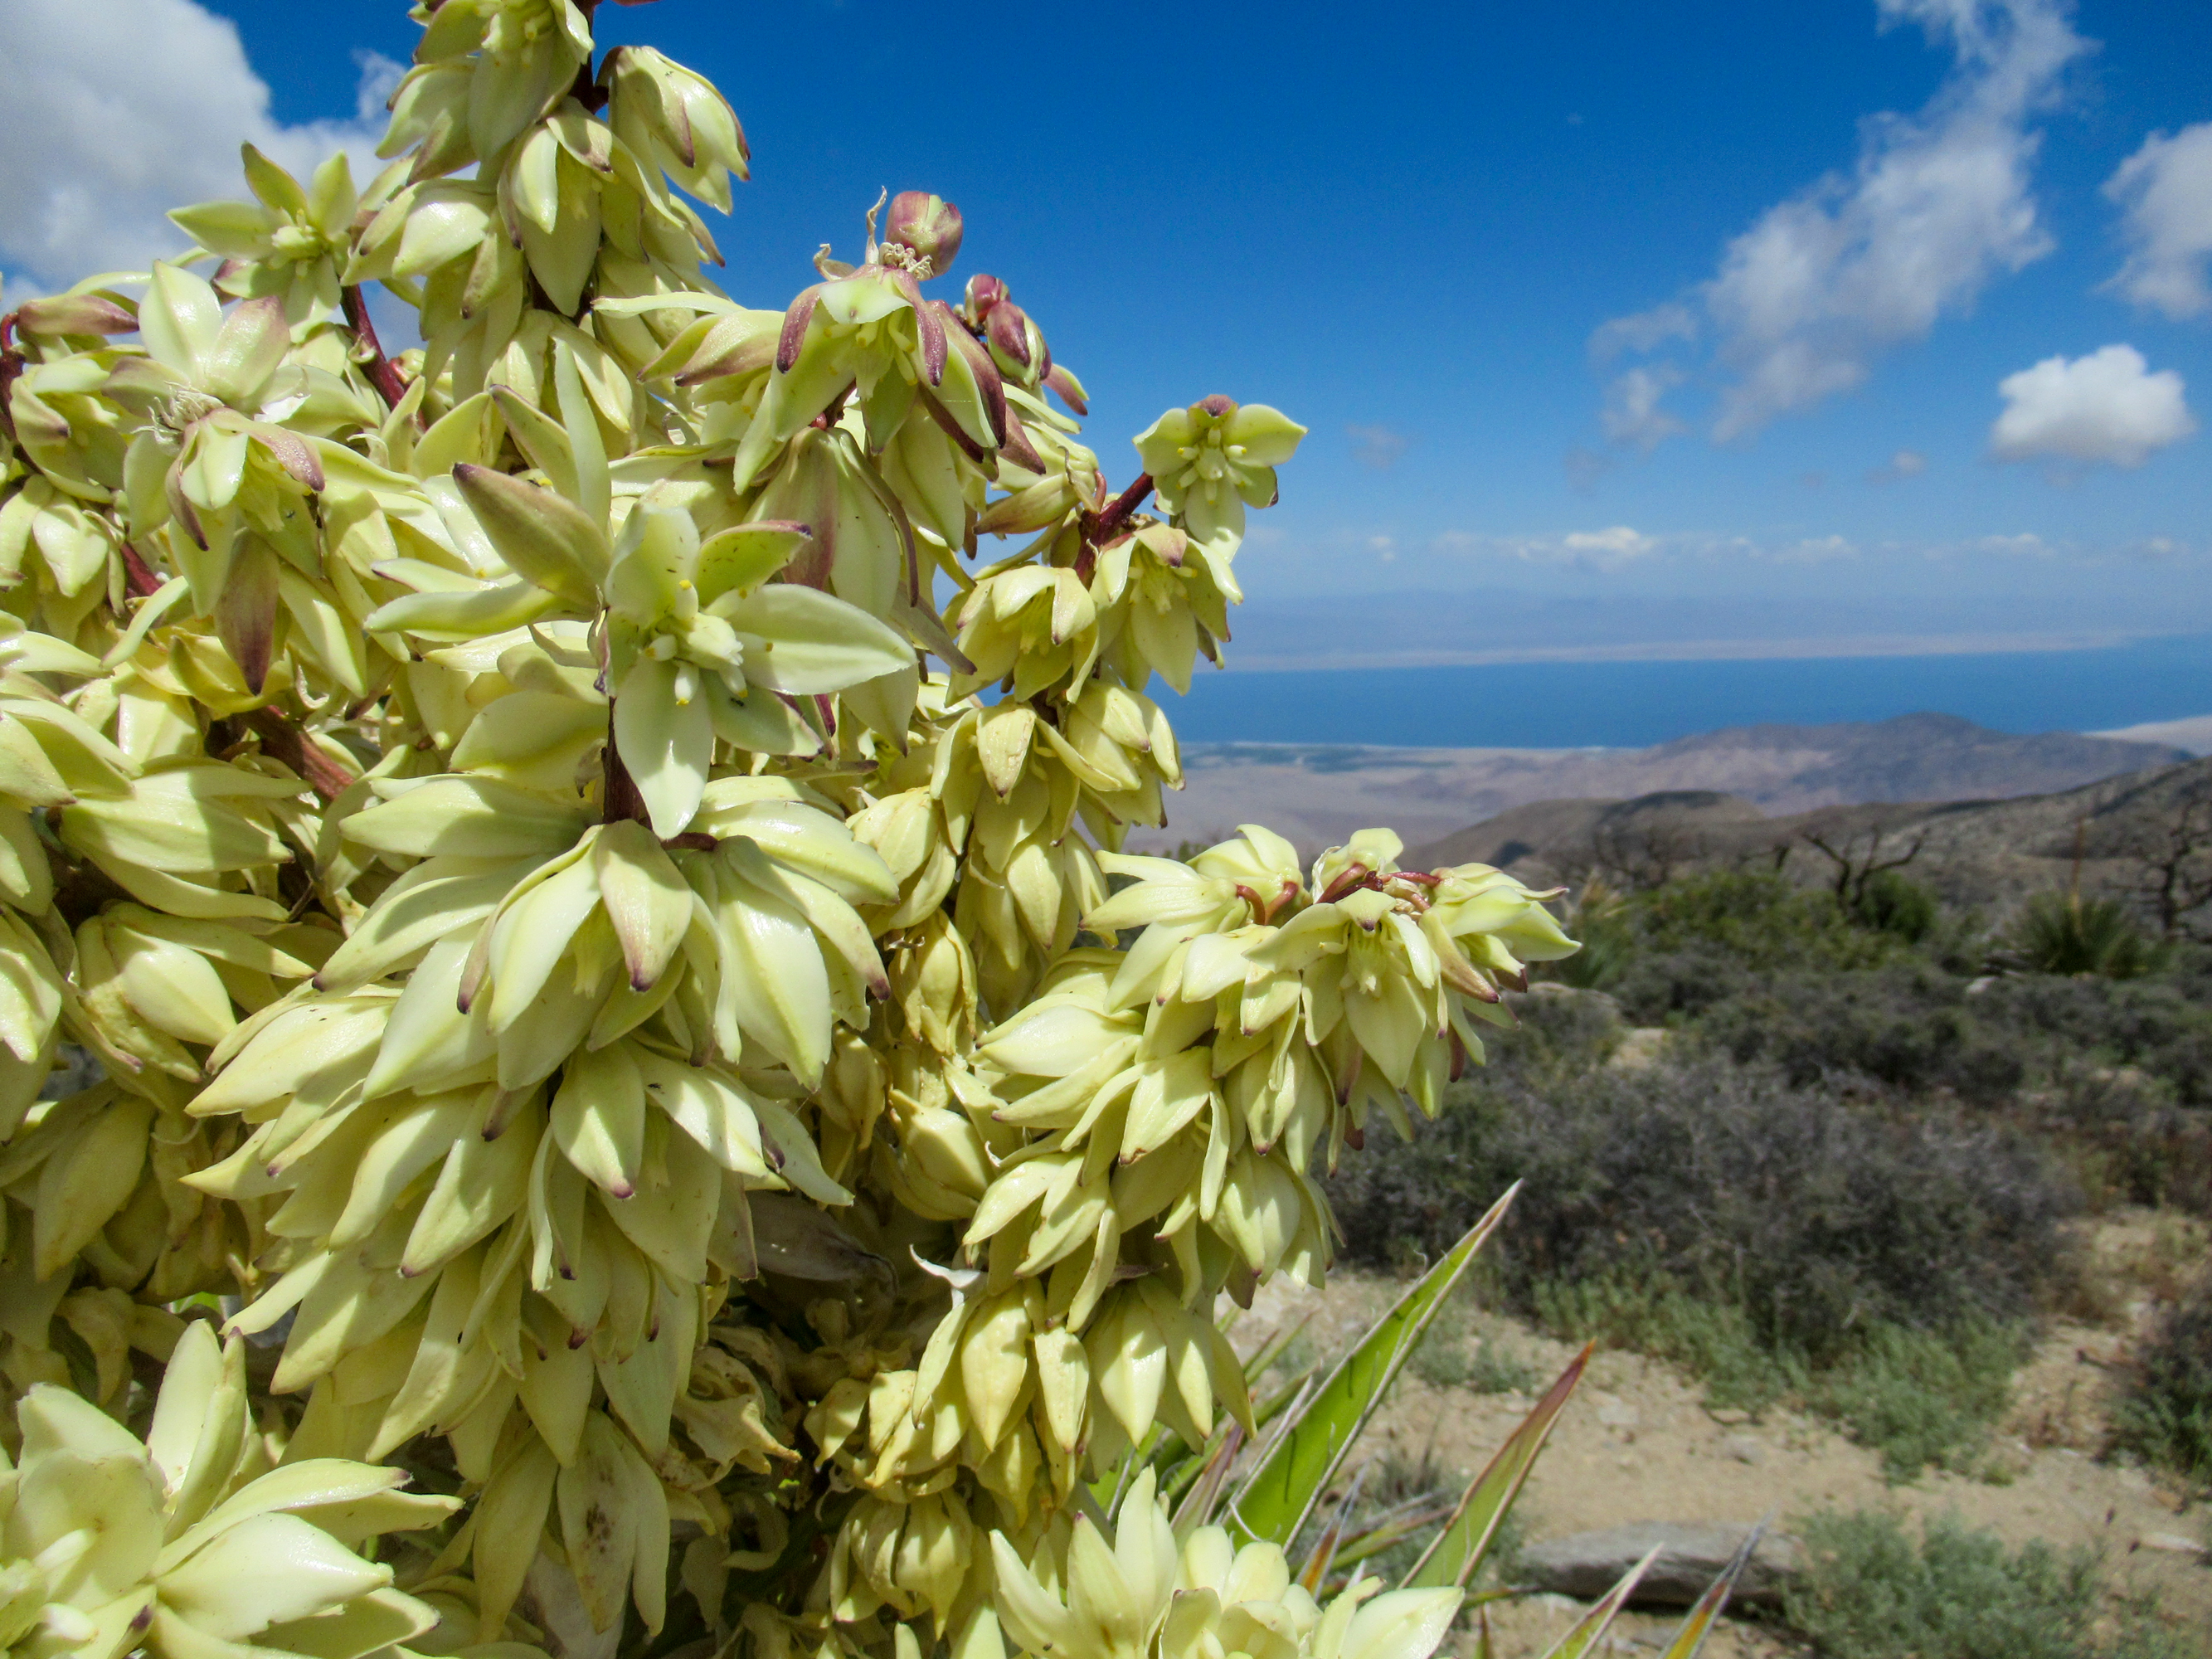 Flowing Yucca plants above the Salton Sea.